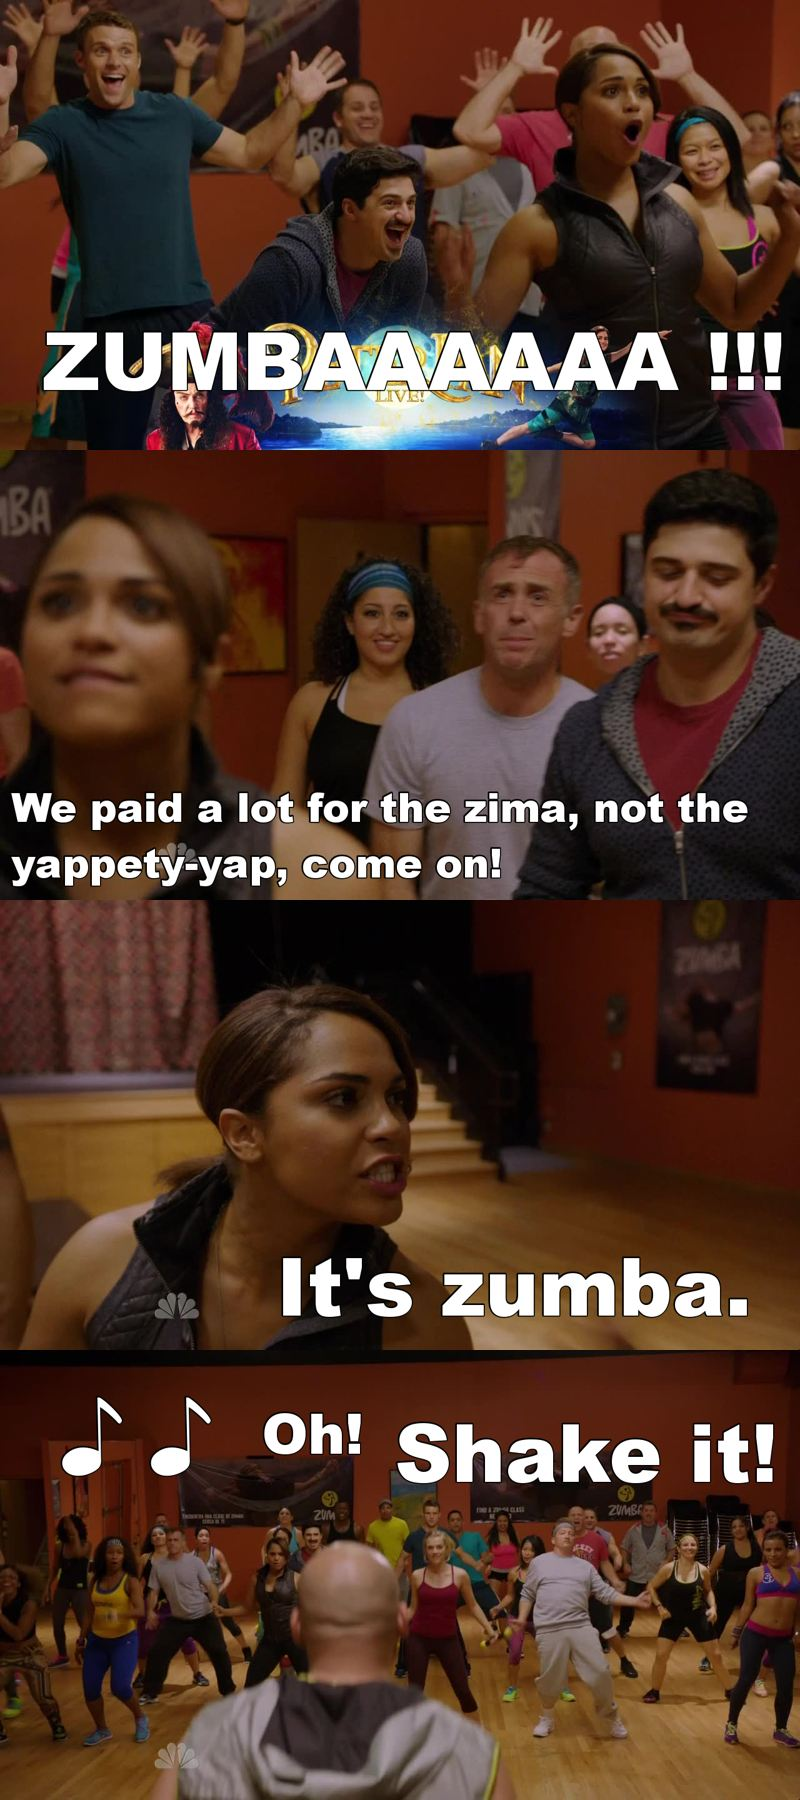 I'm a Zumba lover and this is so hilarious 😂😂😂 Ho riso come una pazza 😂😂😂 ZUMBAAAAA !!!!!